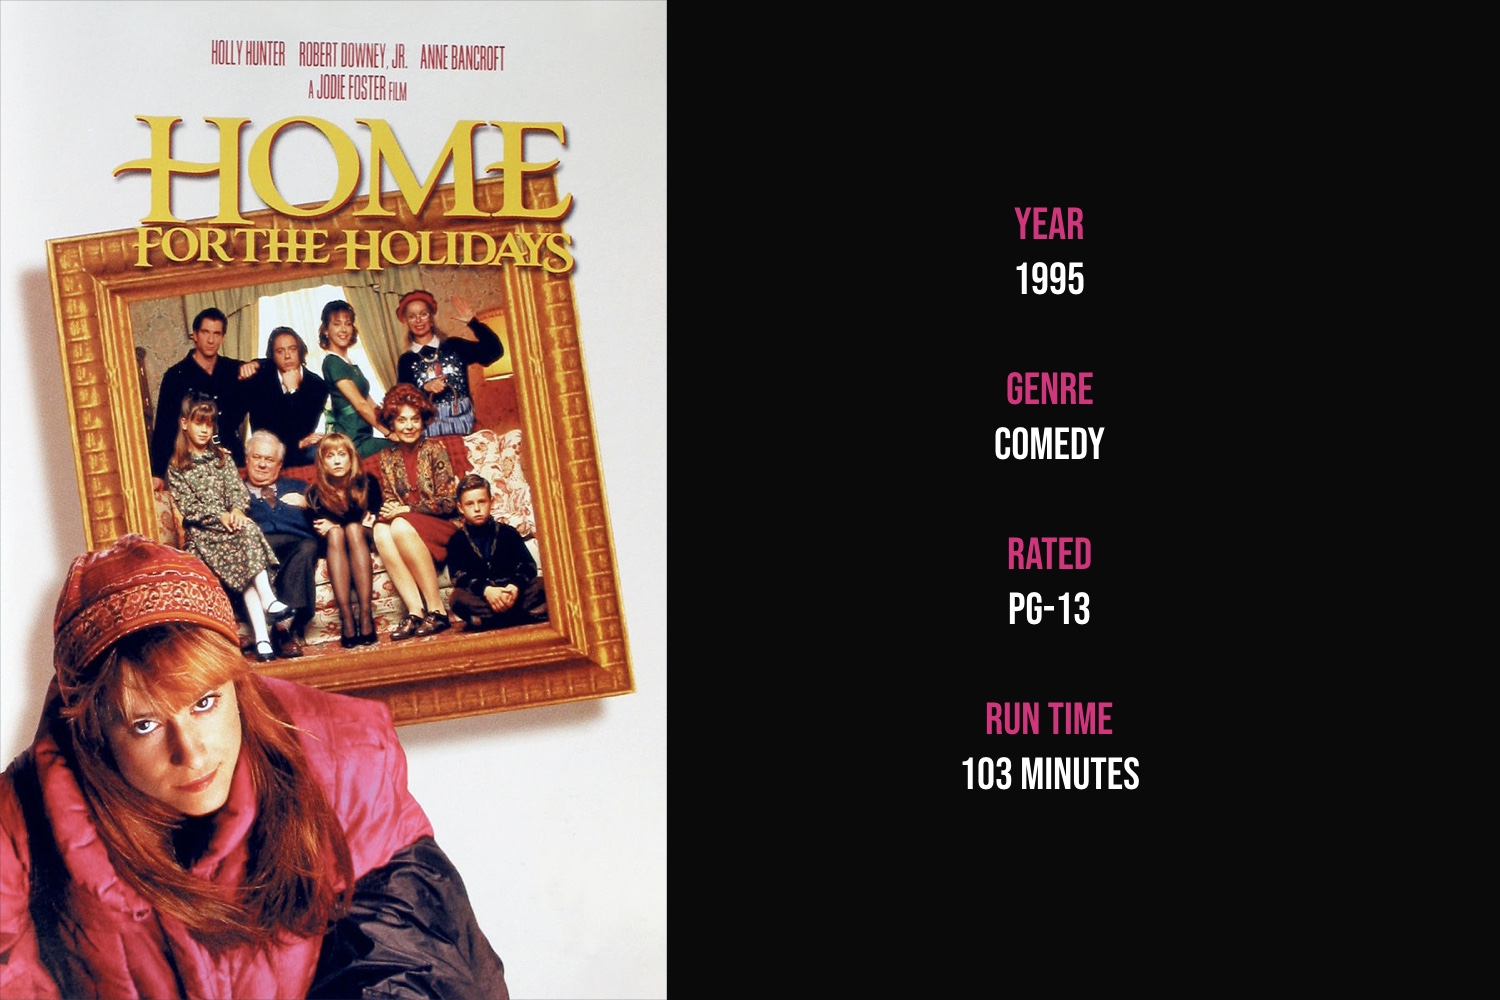 Home for the Holidays - Upon losing her job and learning that her daughter plans to spend Thanksgiving with her boyfriend, a single mom returns home to spend Thanksgiving with her zany family.iTunes | Amazon